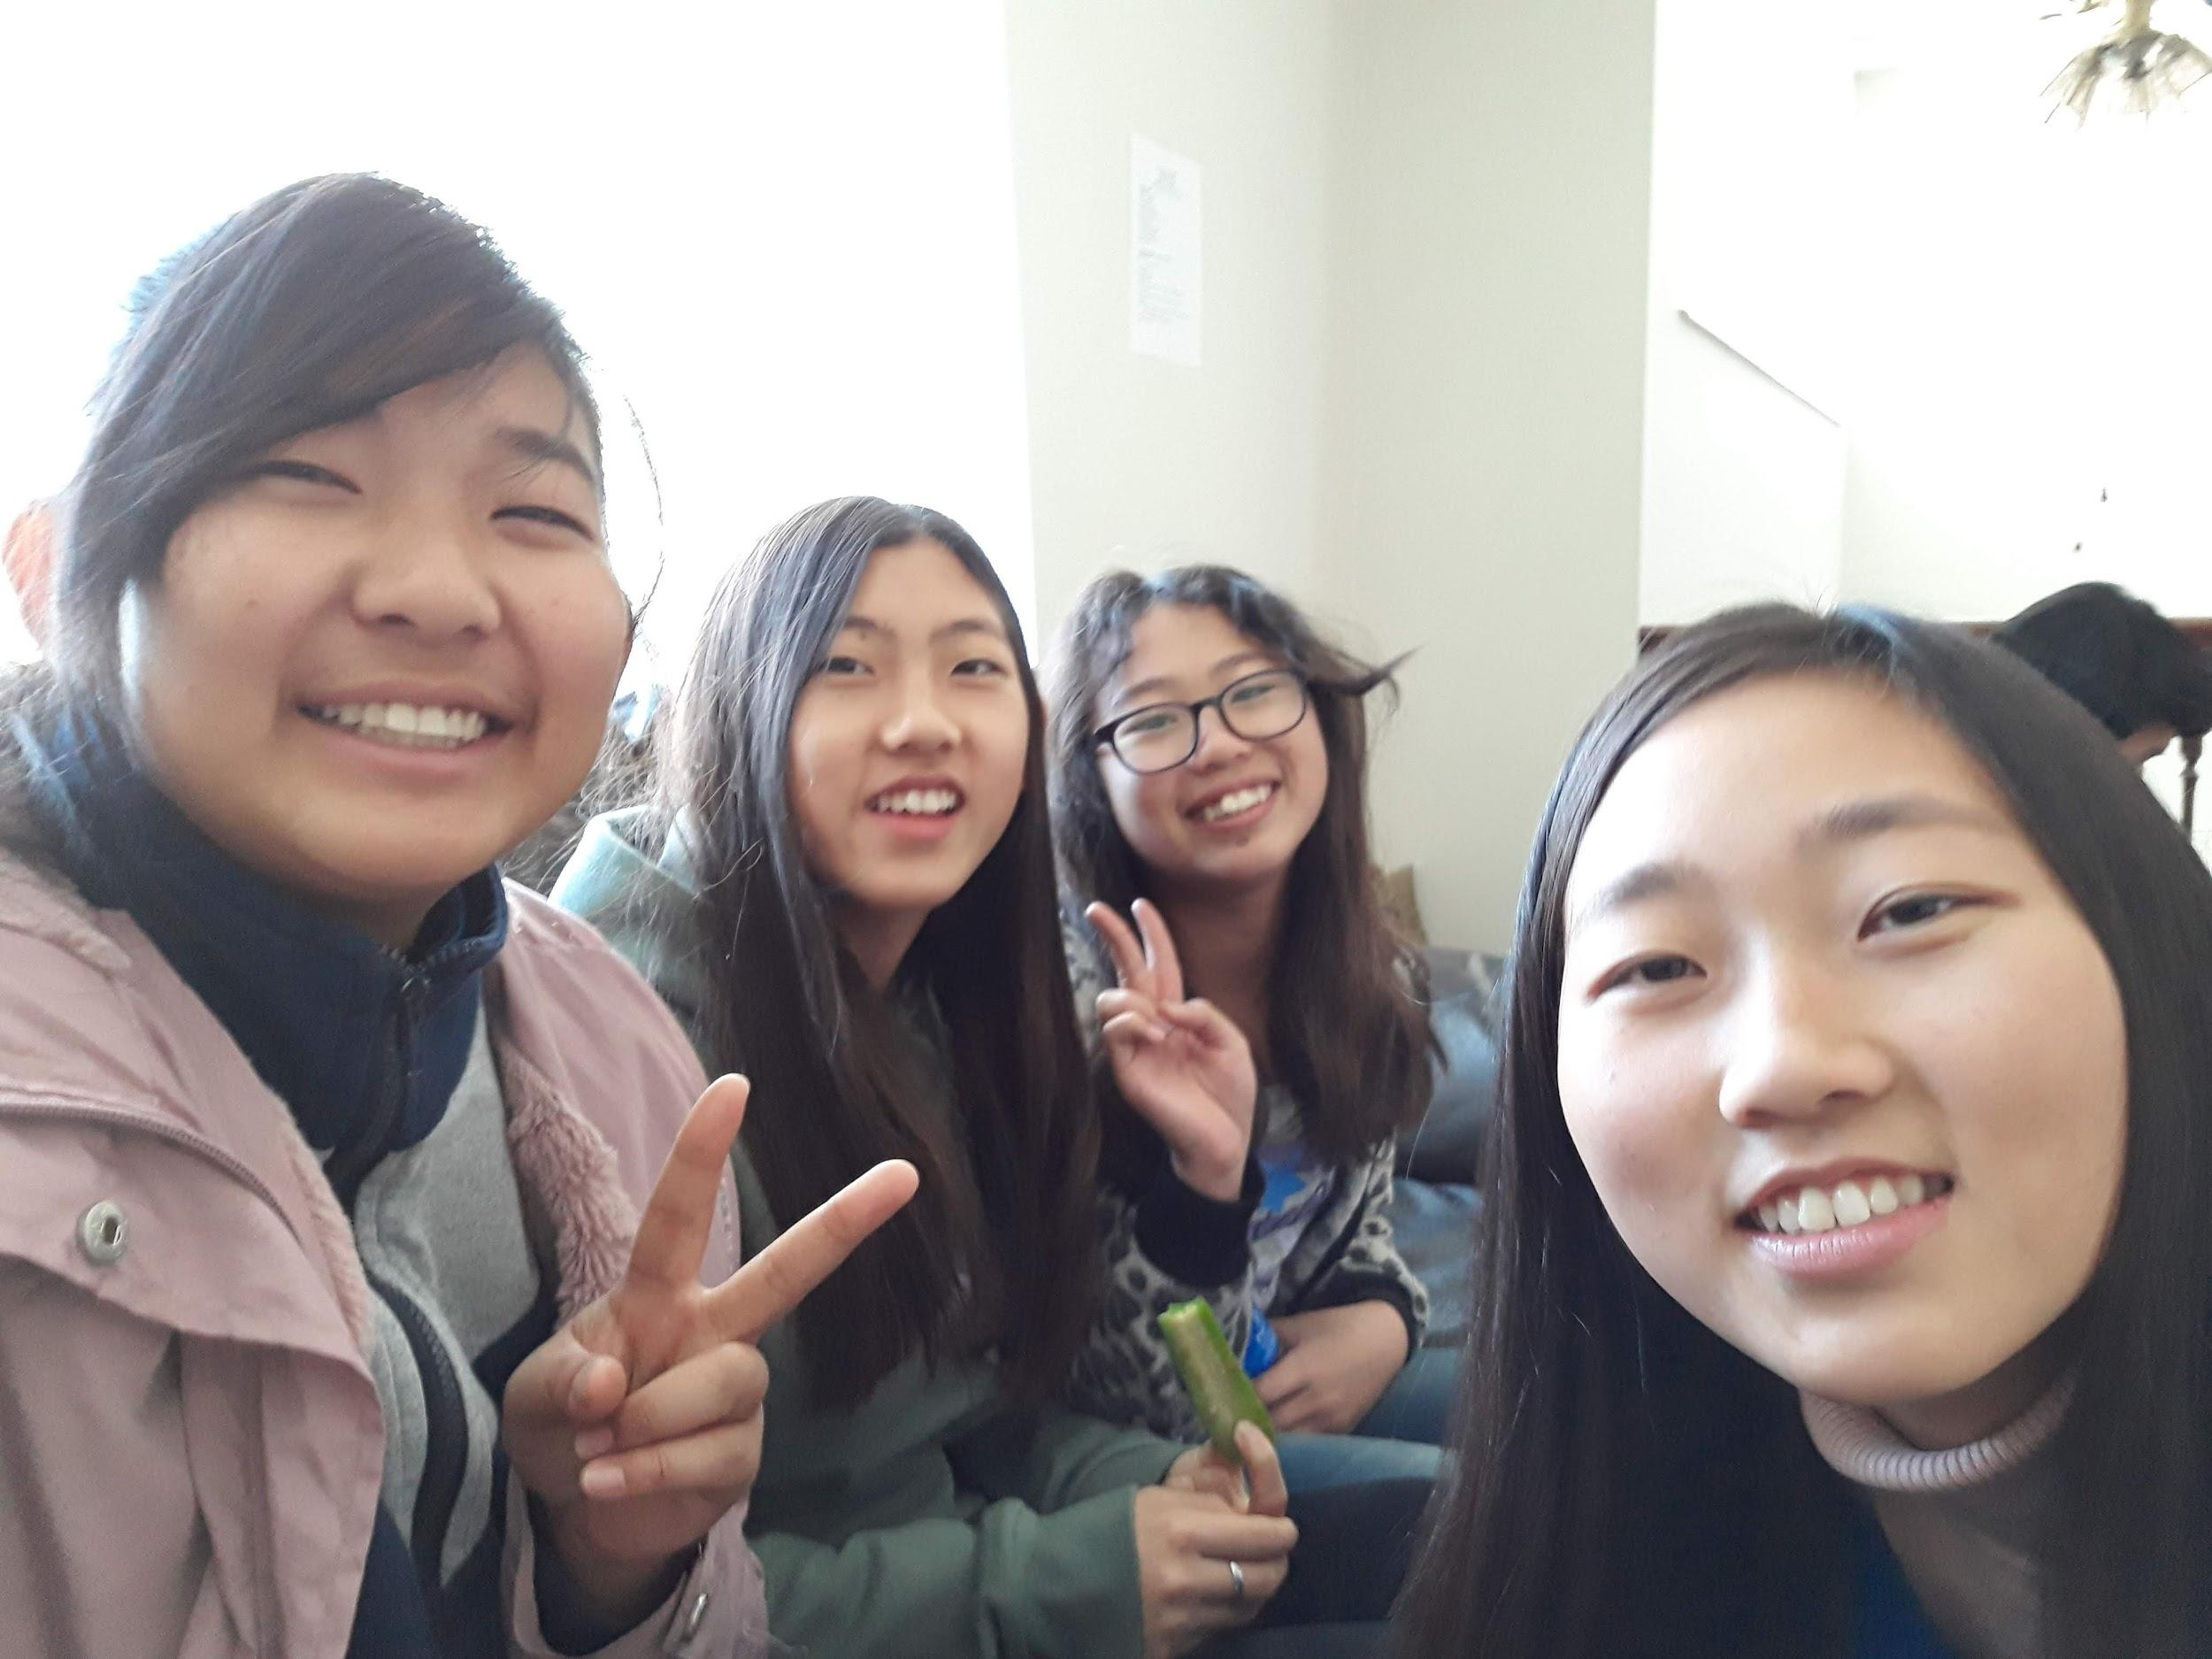 Kana Ishii (left front)  and Yeon-su Hwang (right front) return from their gap year program for winter break to join the retreat.